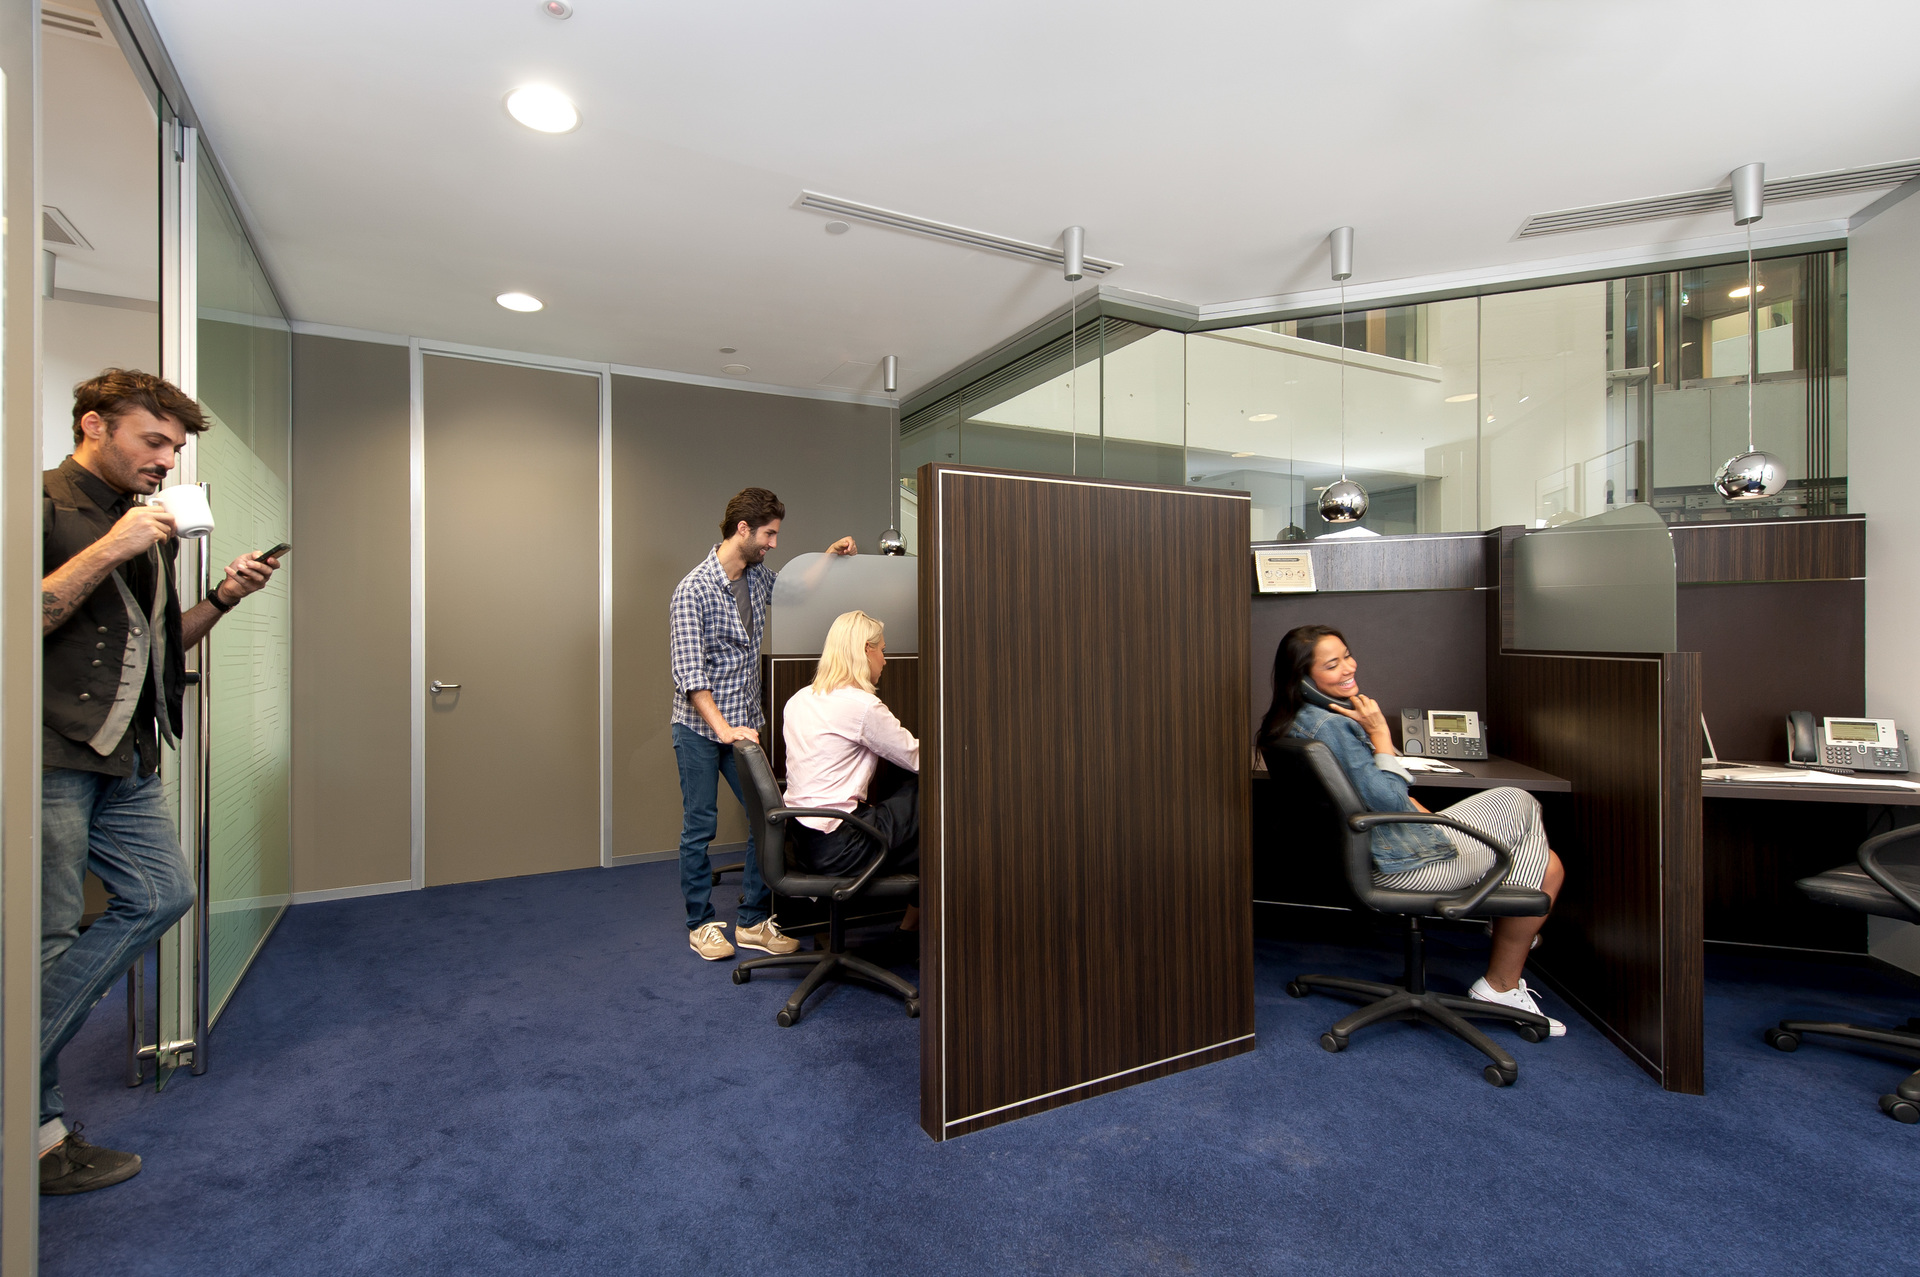 1-PERSON OFFICES LOCATED IN PARRAMATTA